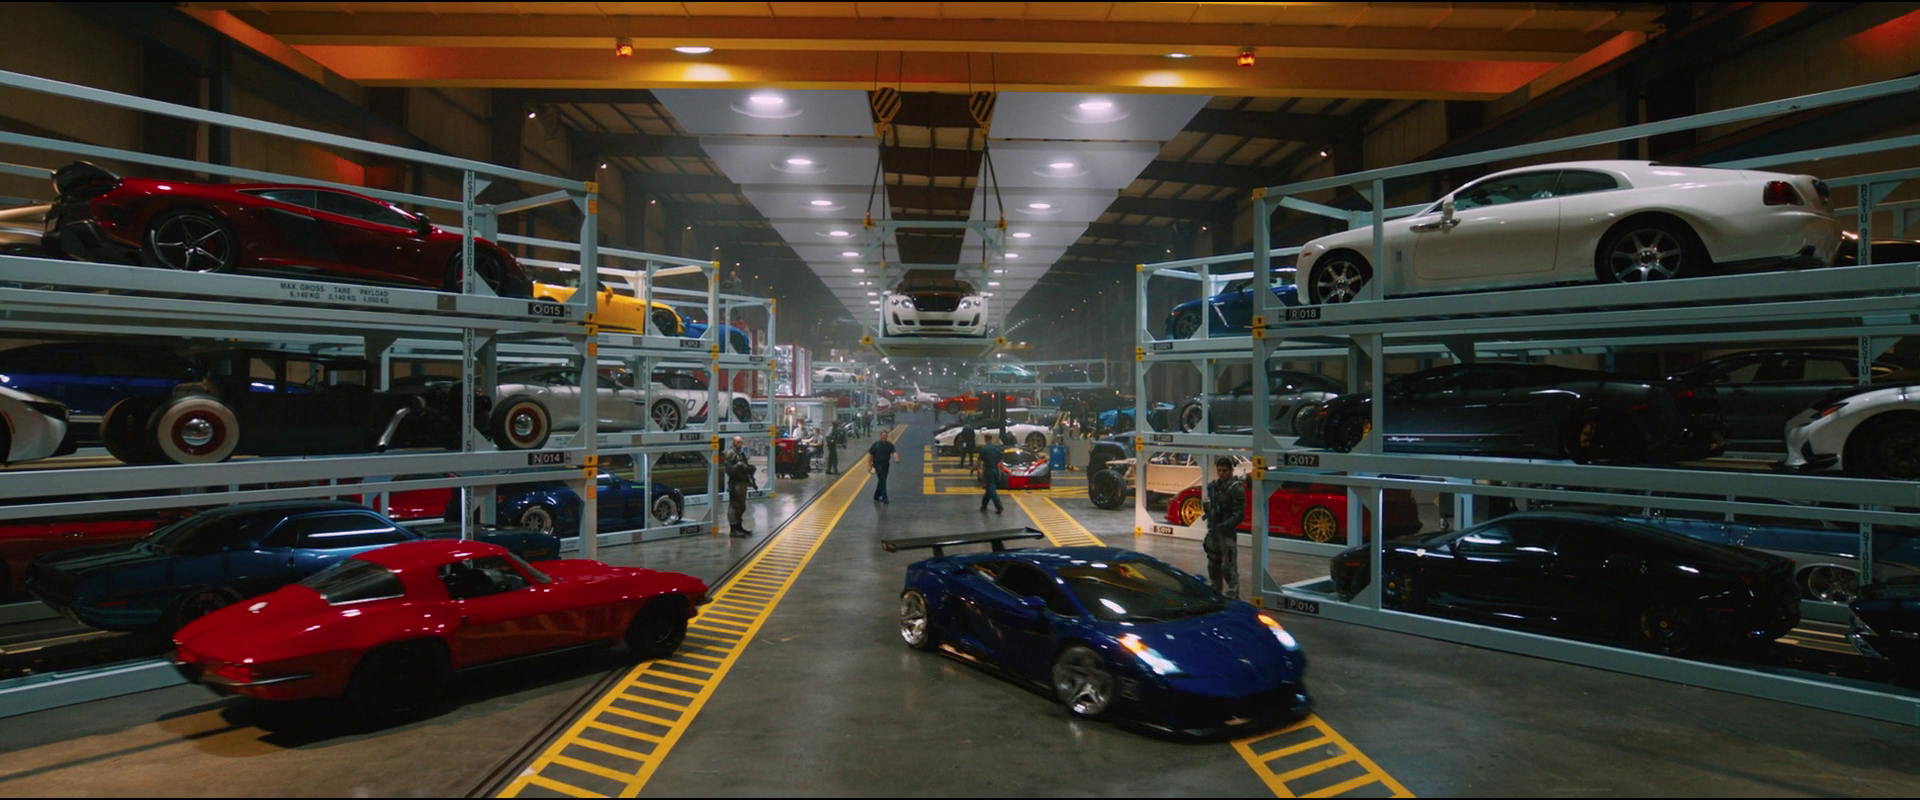 Toy Shop | The Fast and the Furious Wiki | Fandom